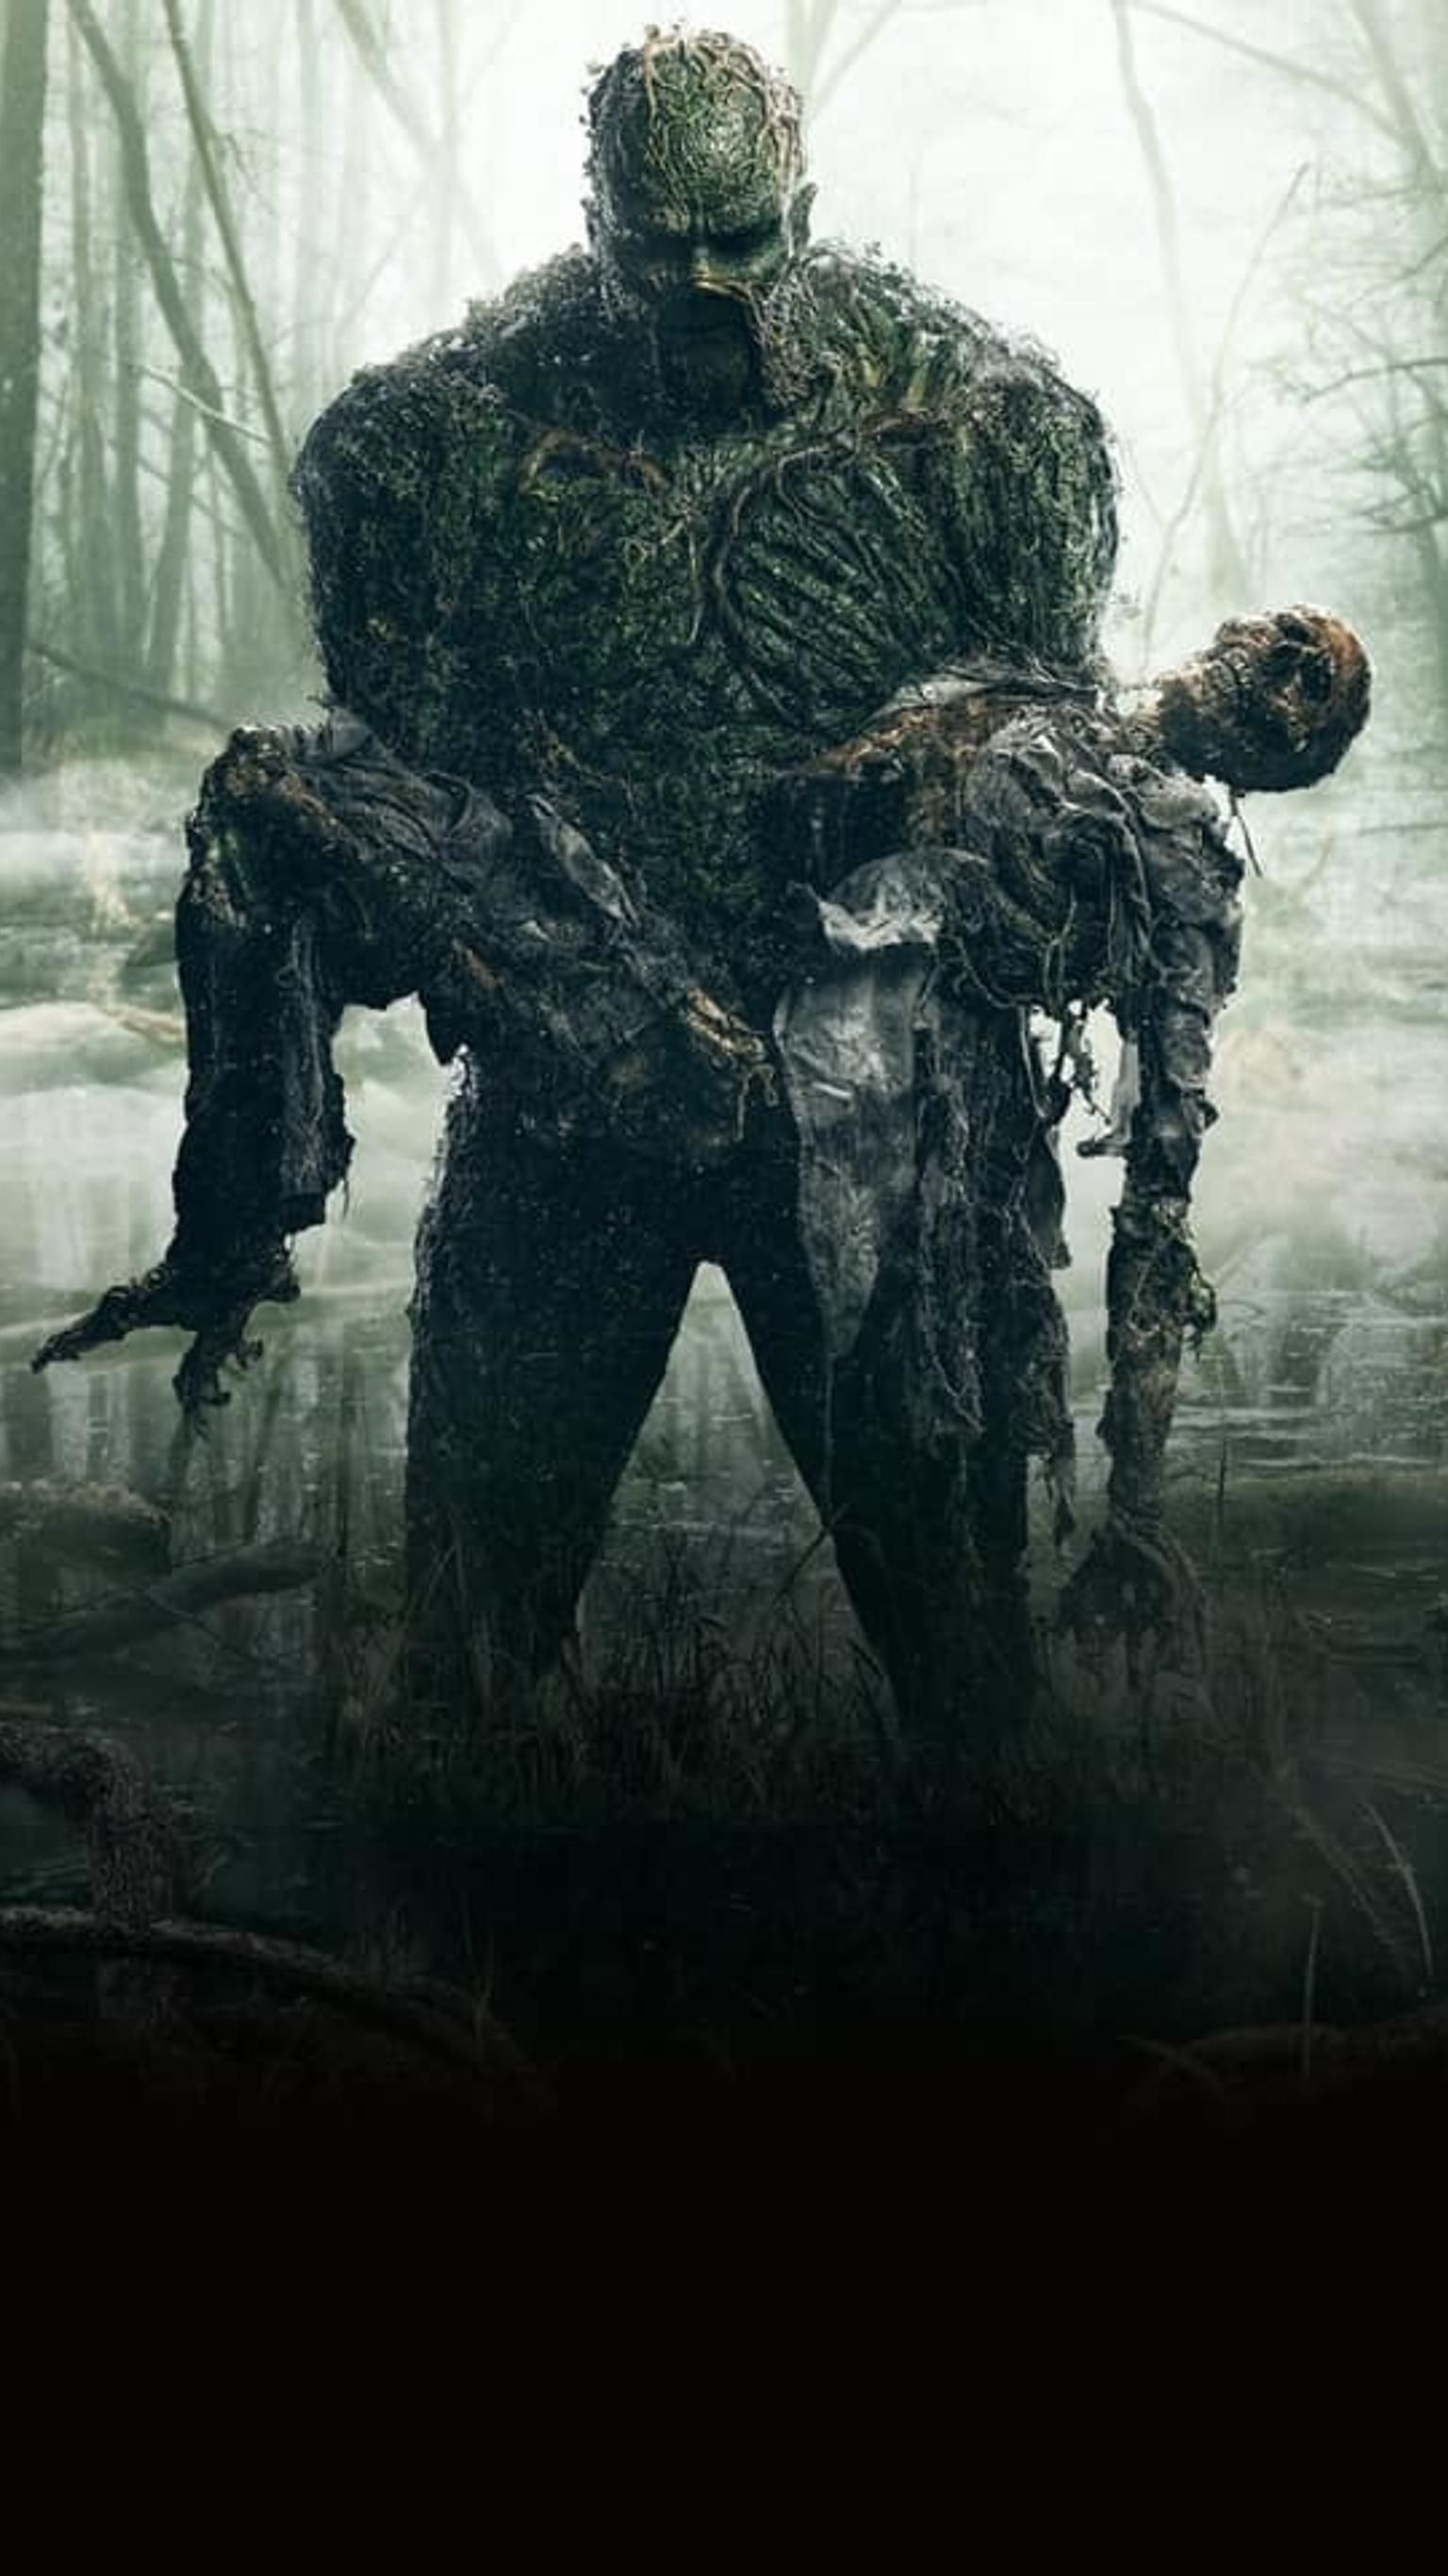 Swamp Thing Phone Wallpaper | Moviemania #swampthing